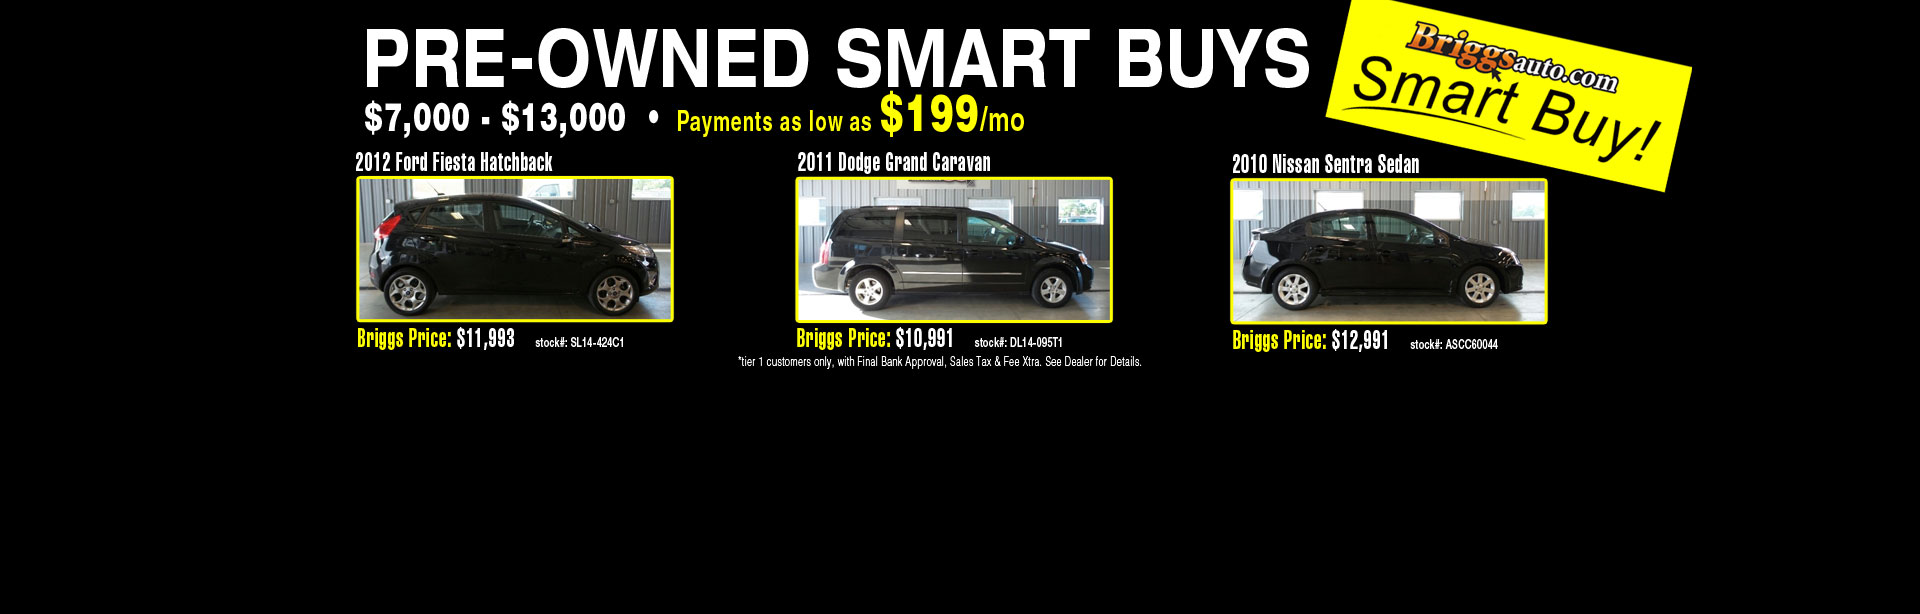 Briggs Pre-Owned Smart Buys